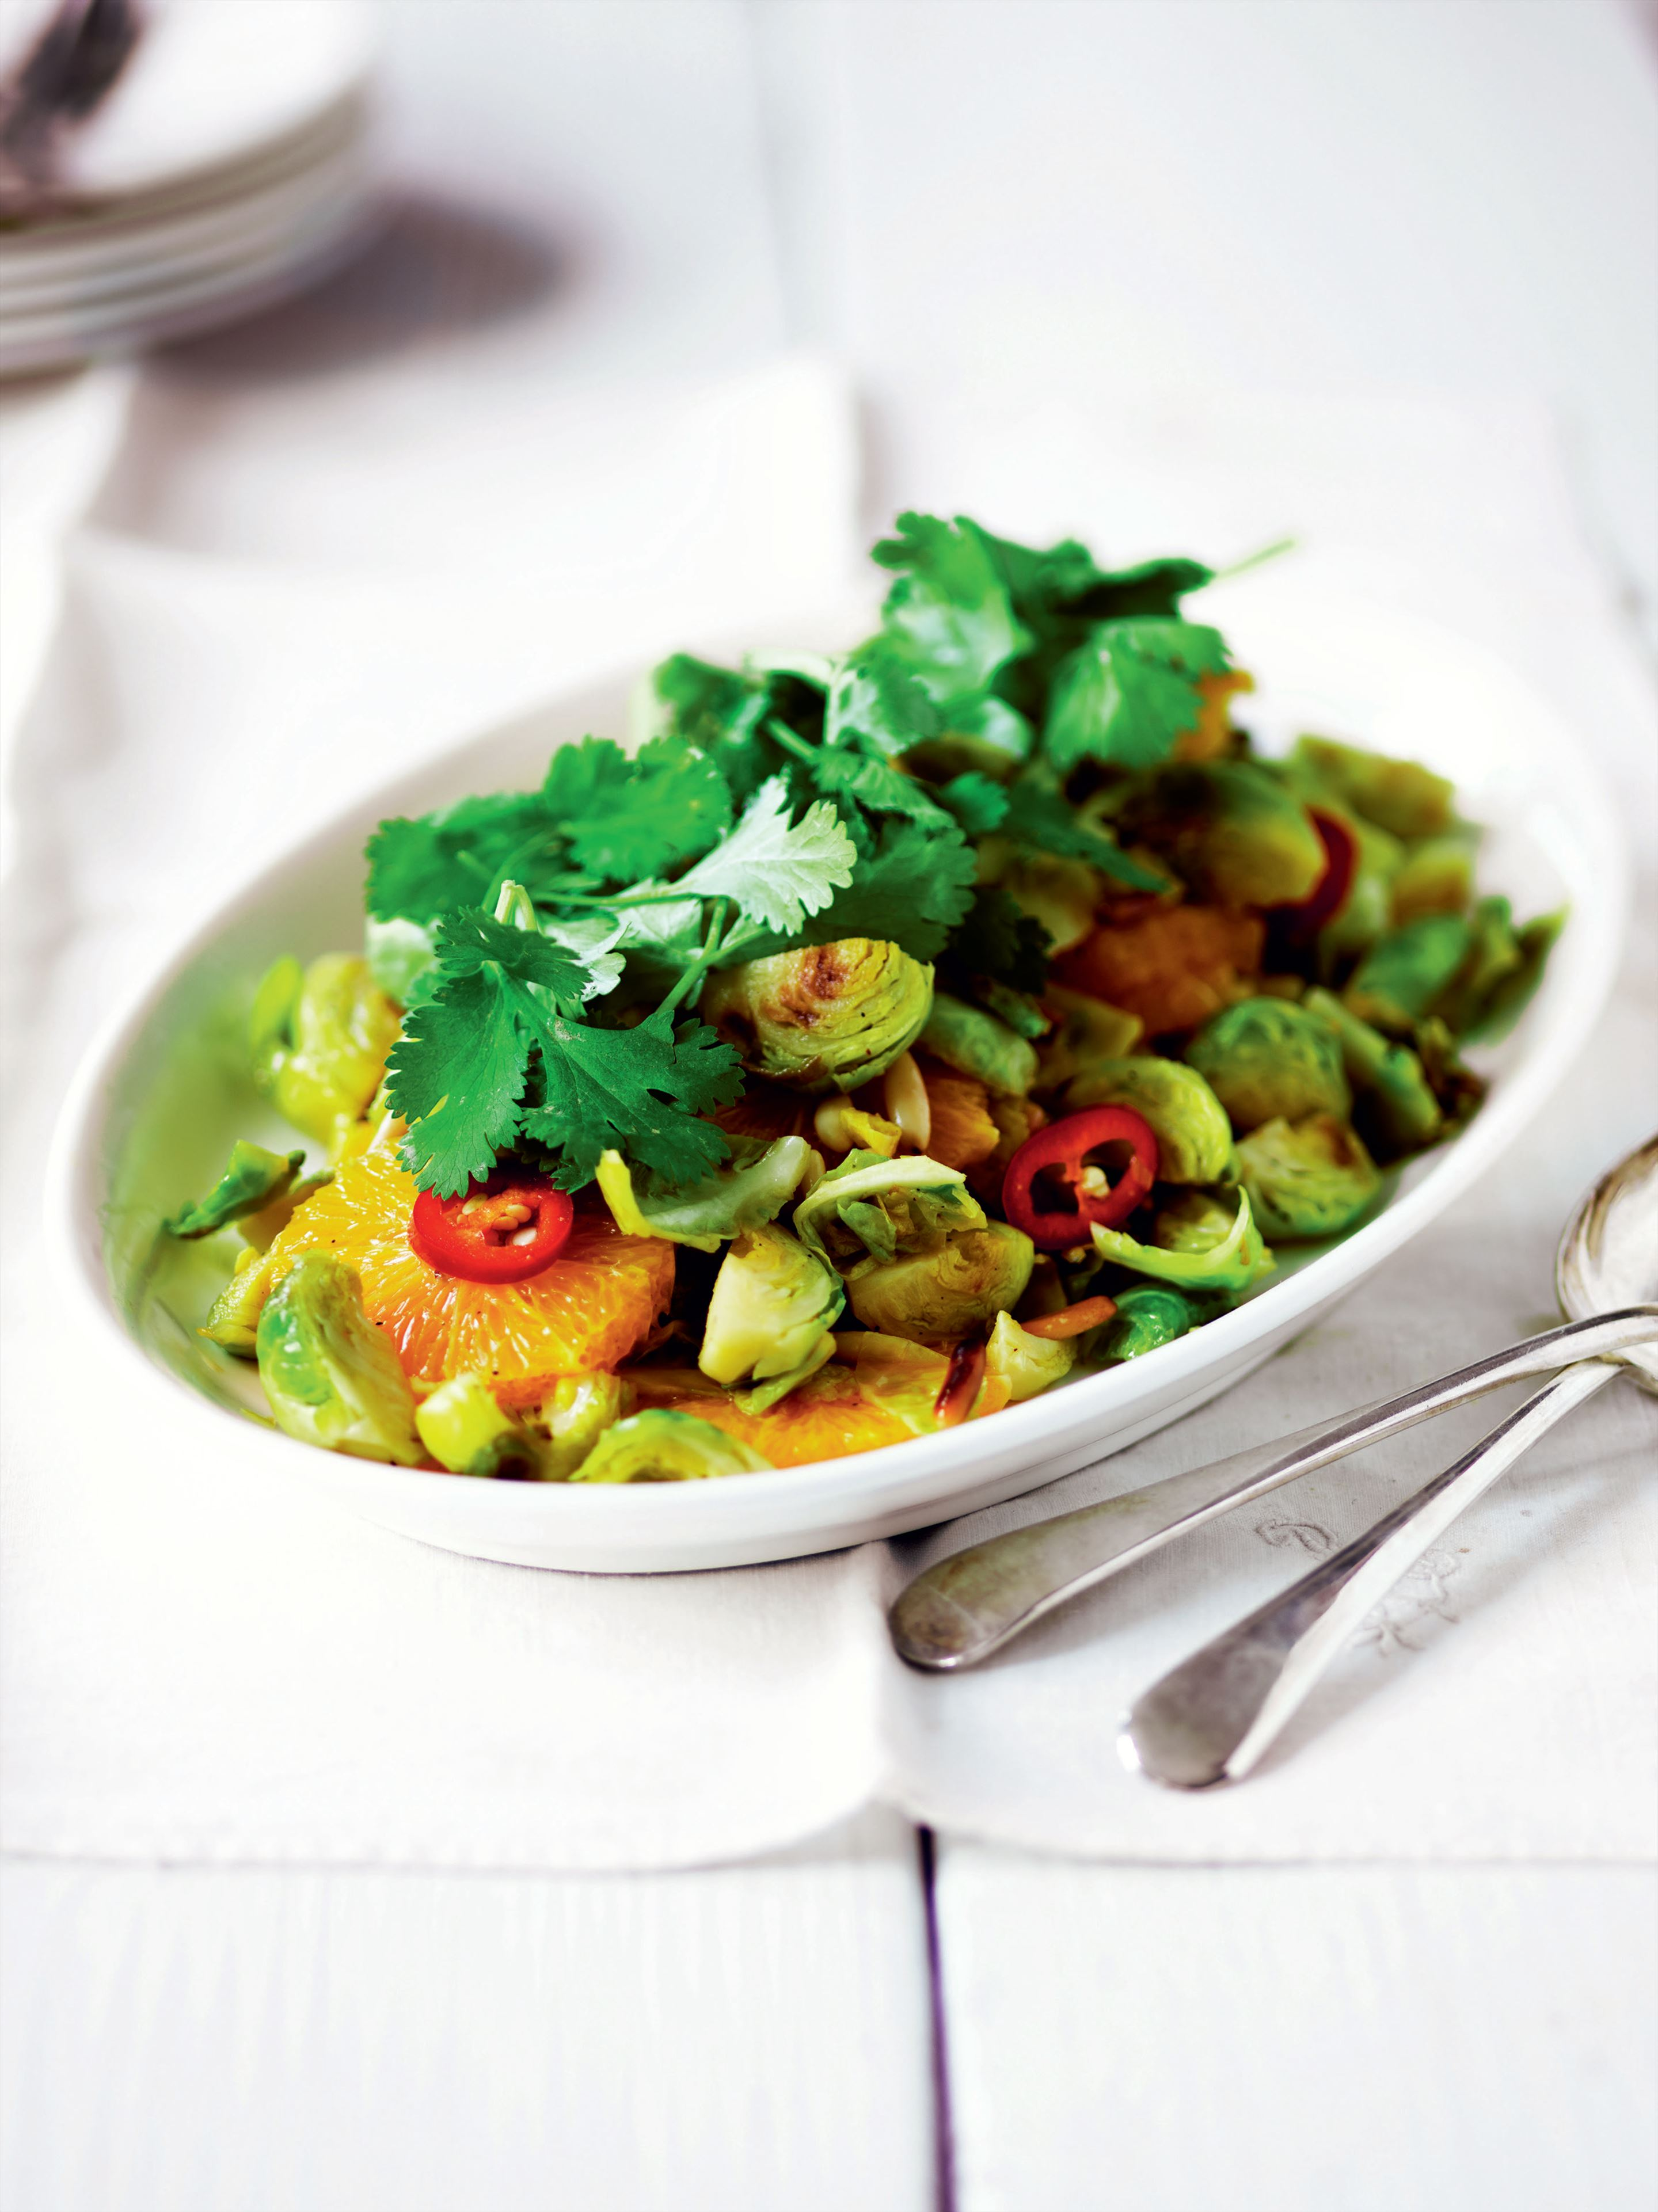 Brussels sprouts, chilli and oranges